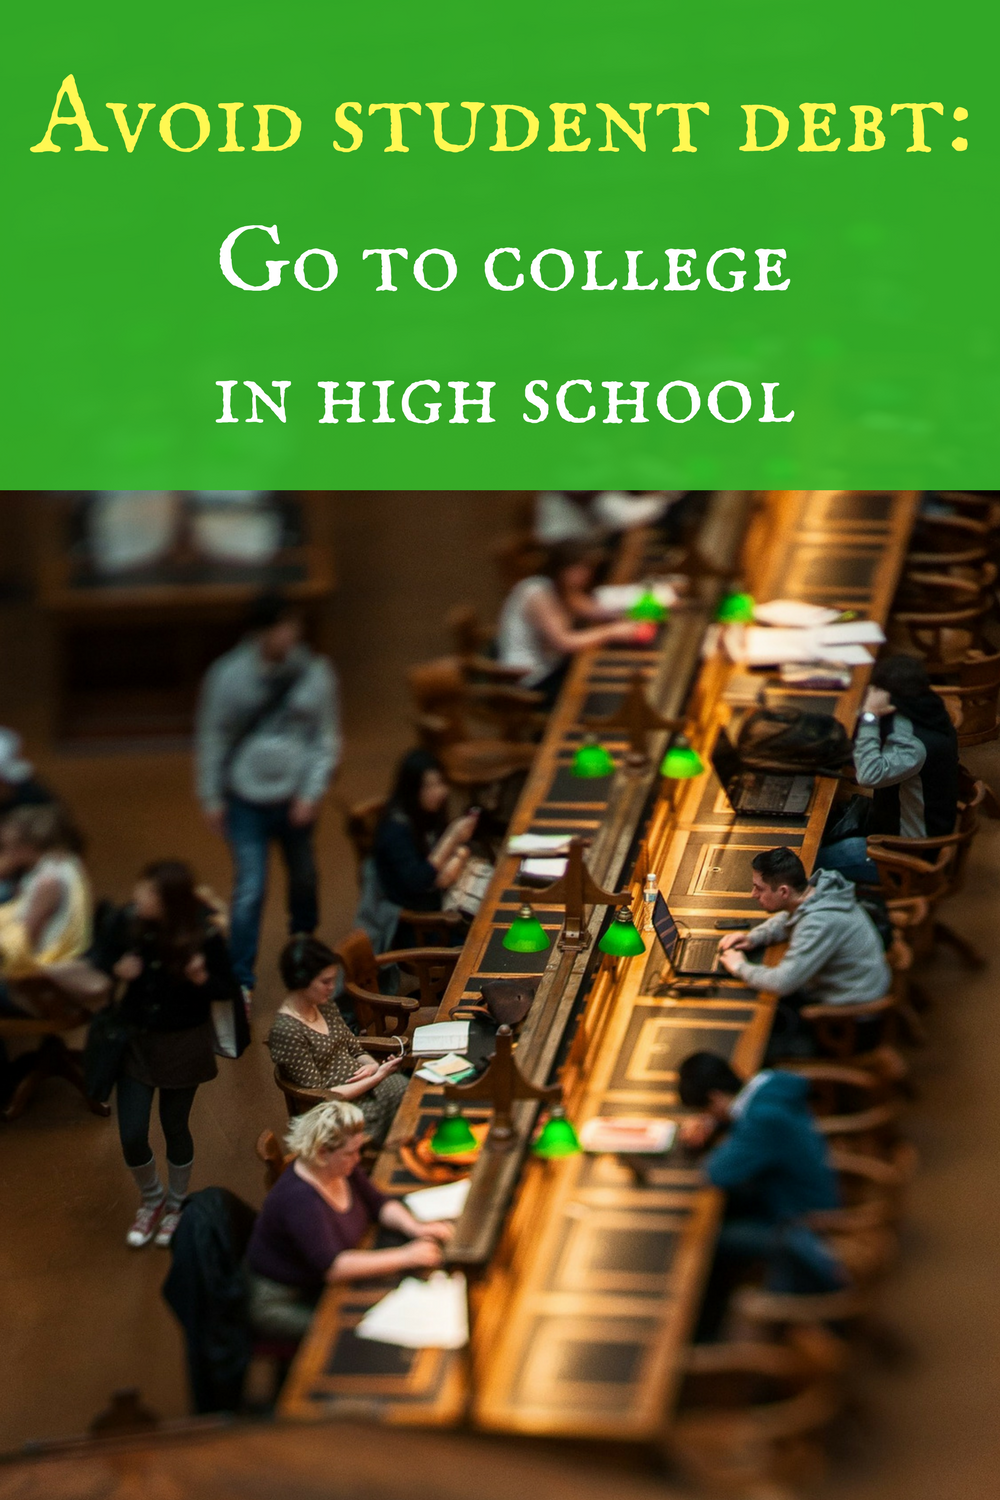 Want to go to college frugally? Dual enrollment!